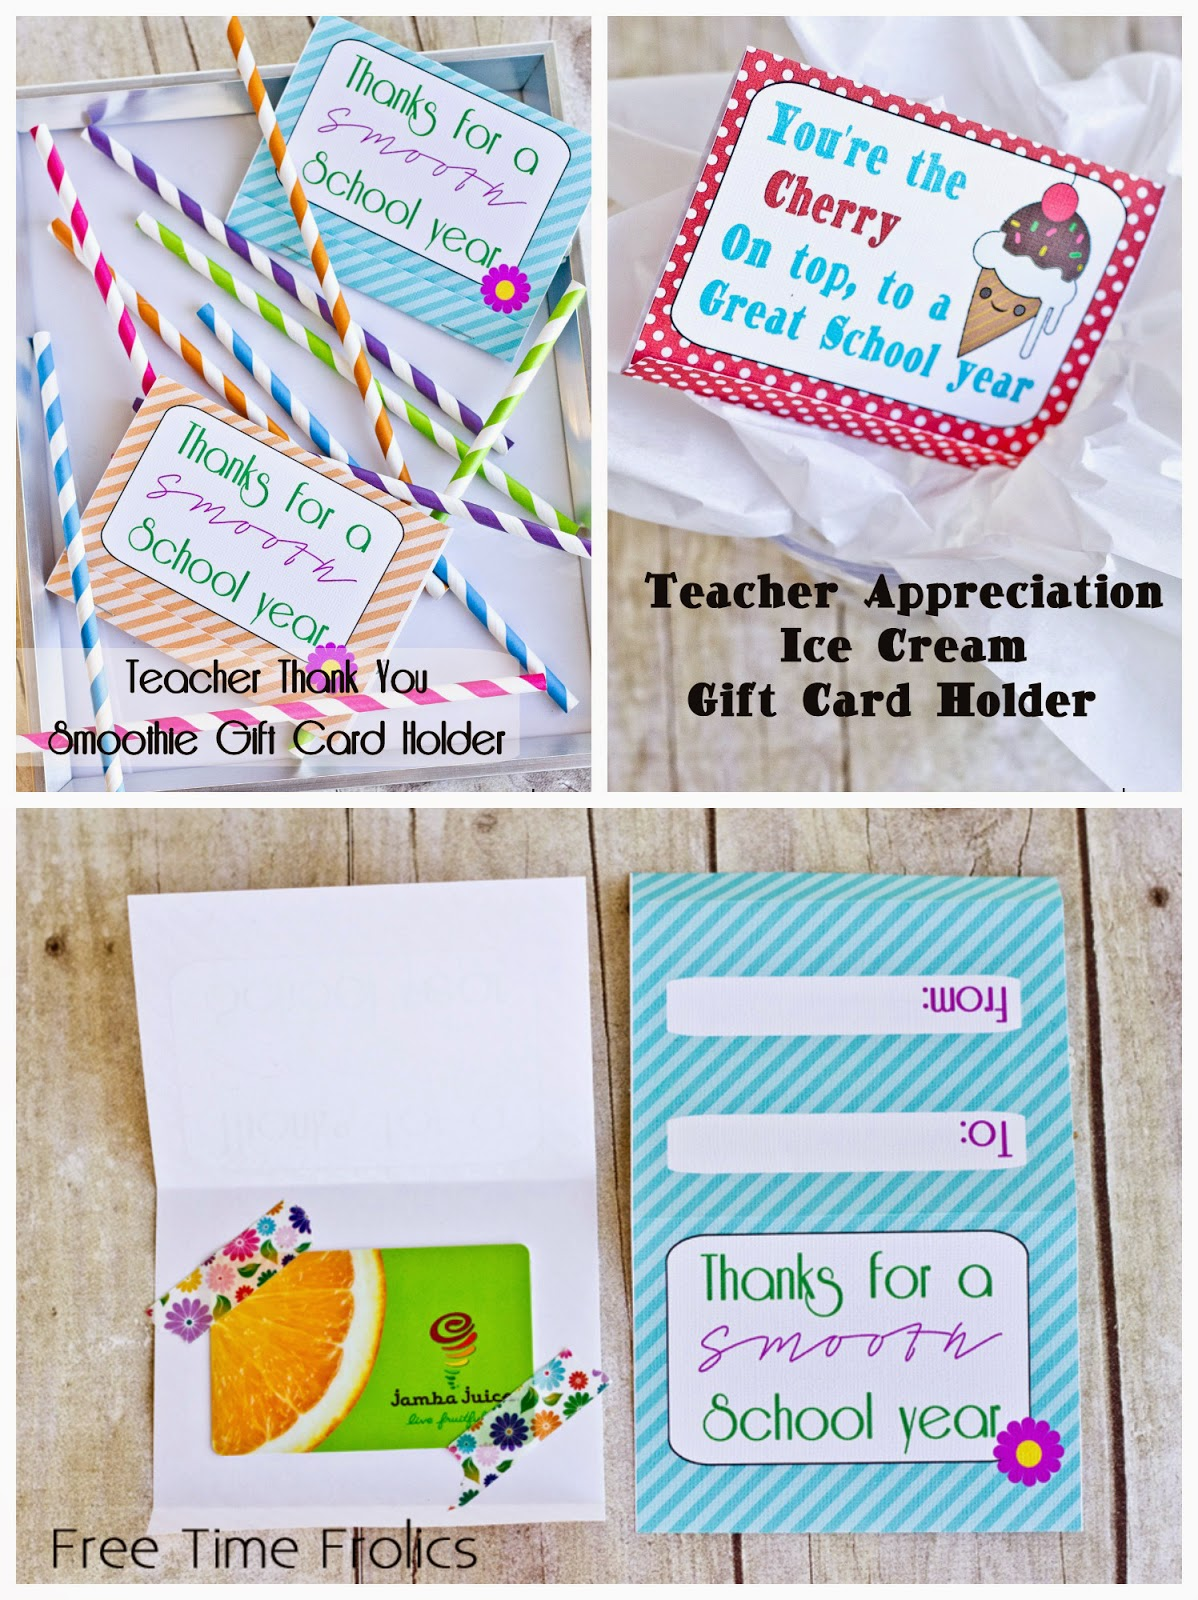 teacher appreciation gift card printables www.freetimefrolics.com #teacherapprecaiation #freeprintable